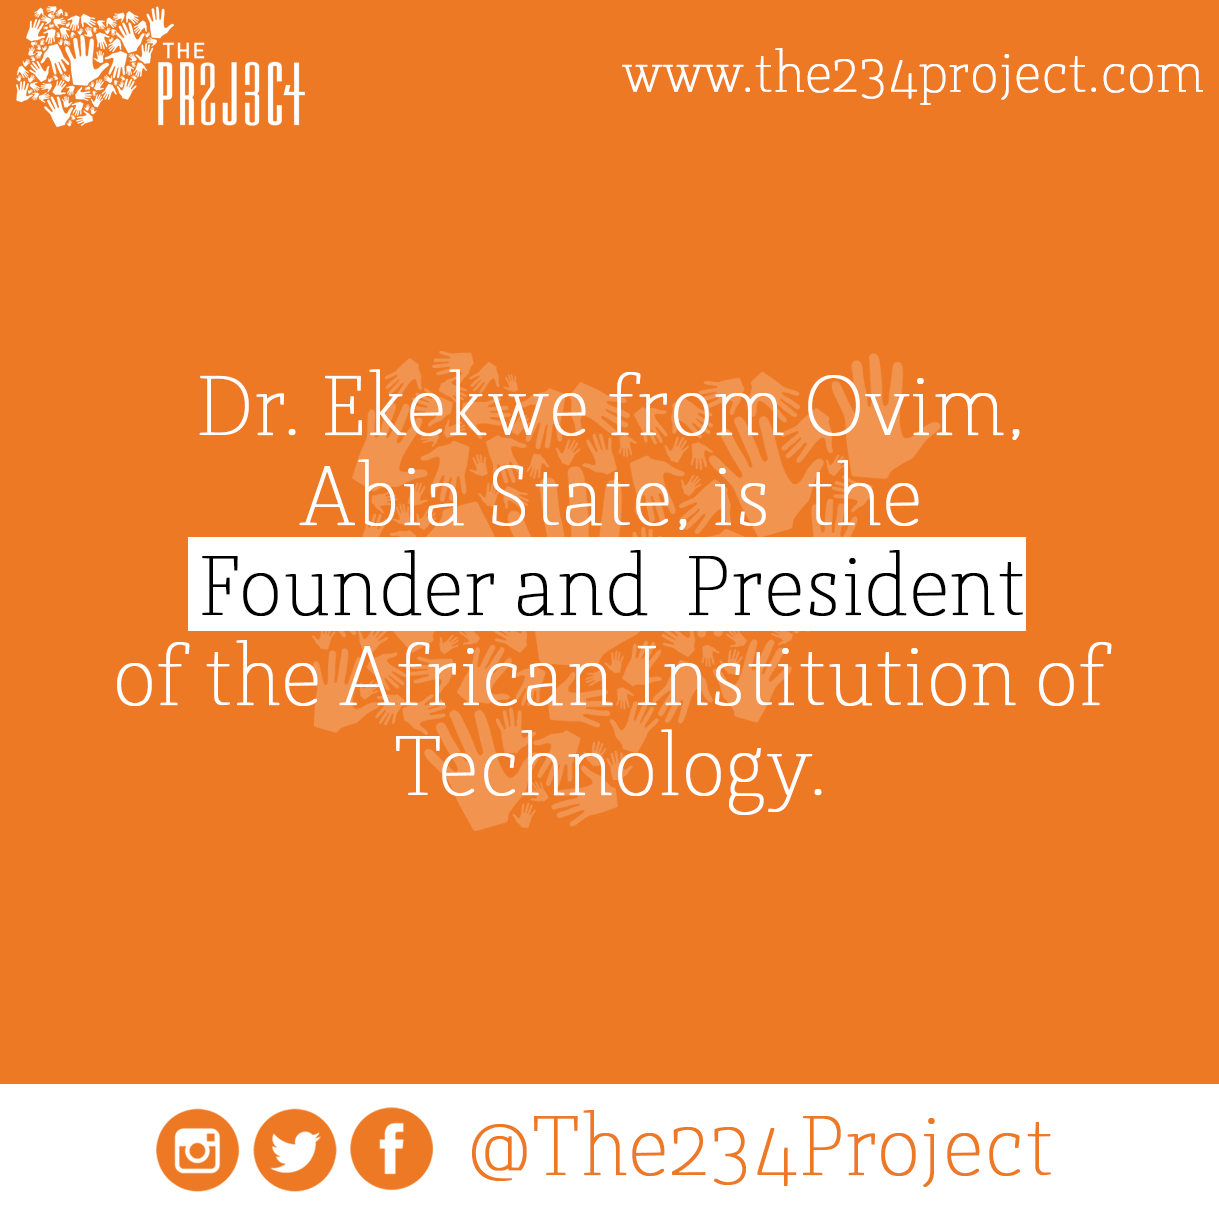 African Institution of Technology